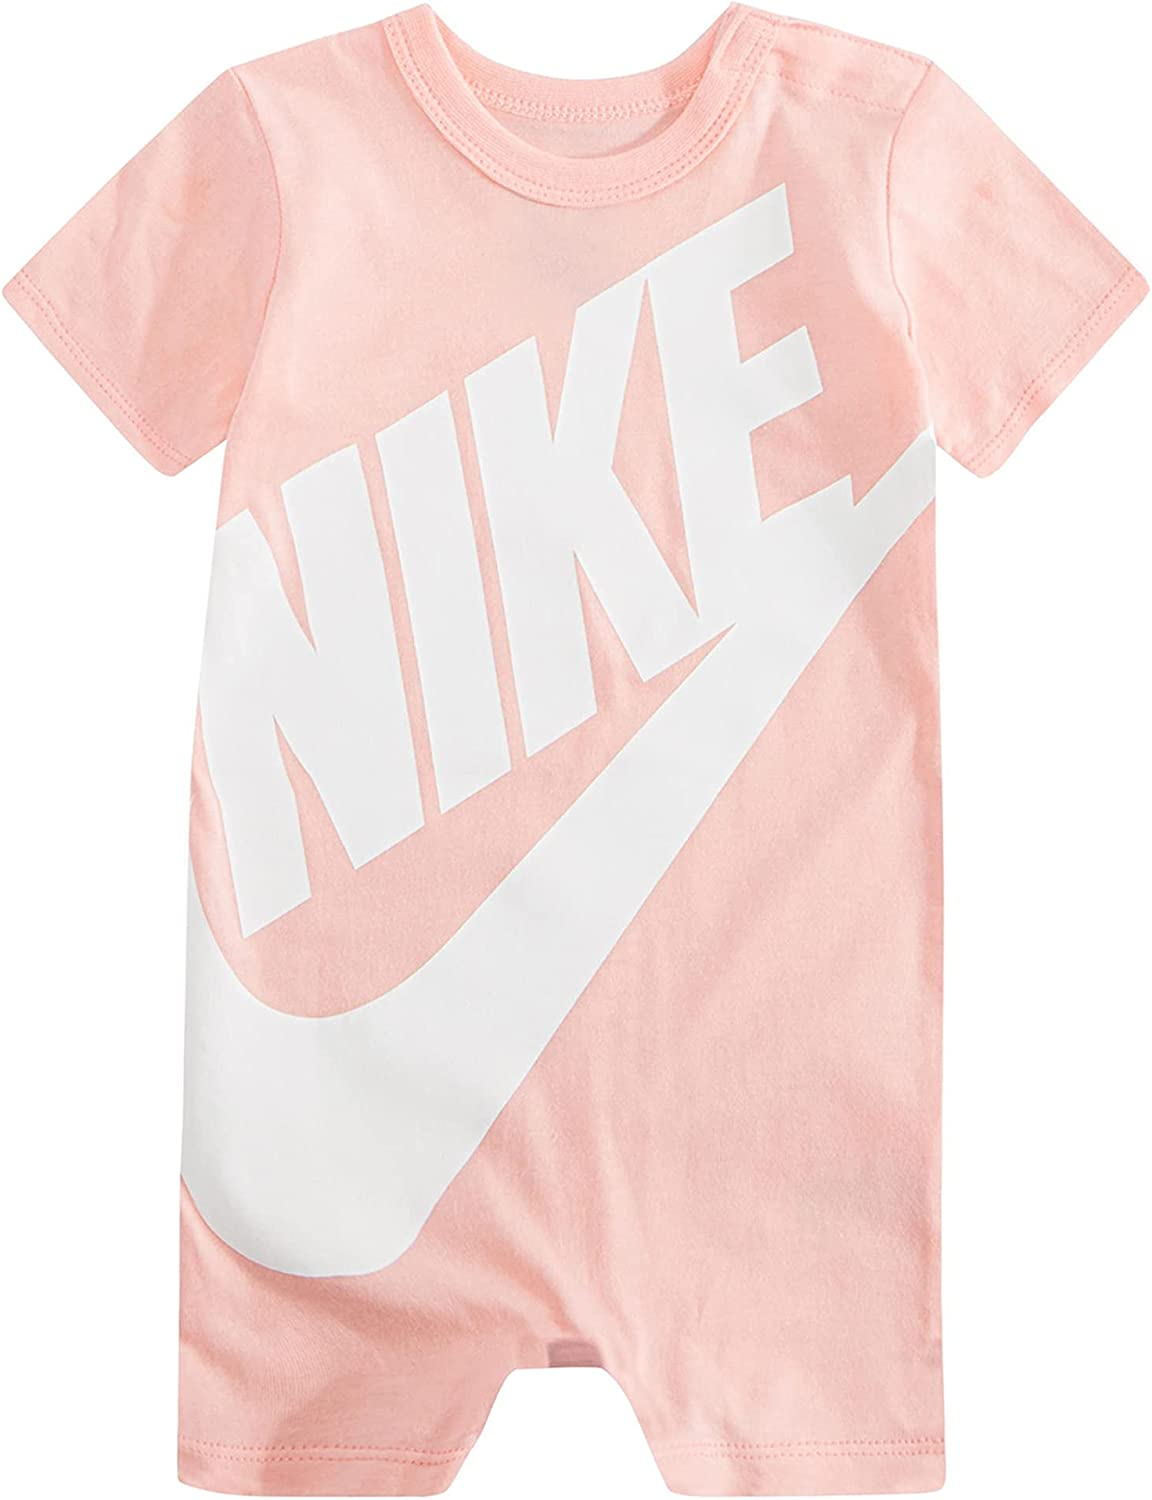 Nike Baby Boys Memphis Large-scale sale Mall Romper